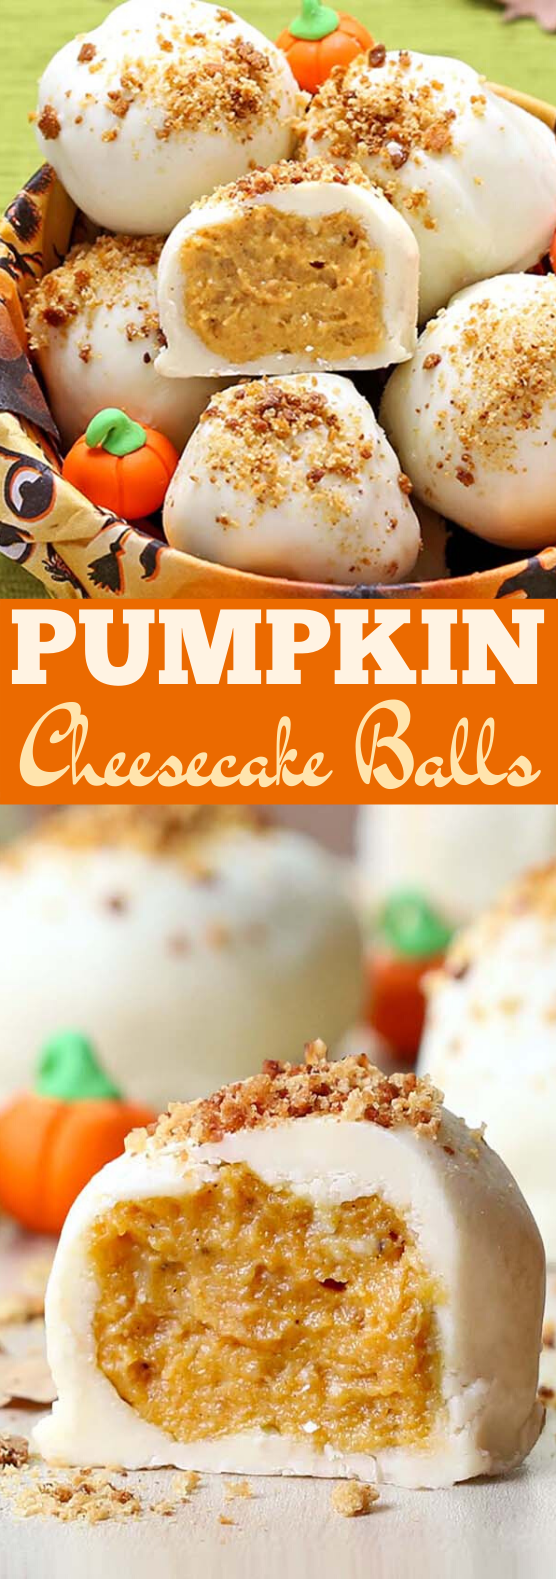 Pumpkin Cheesecake Balls #desserts #pumpkin #fall #cheesecake #recipe